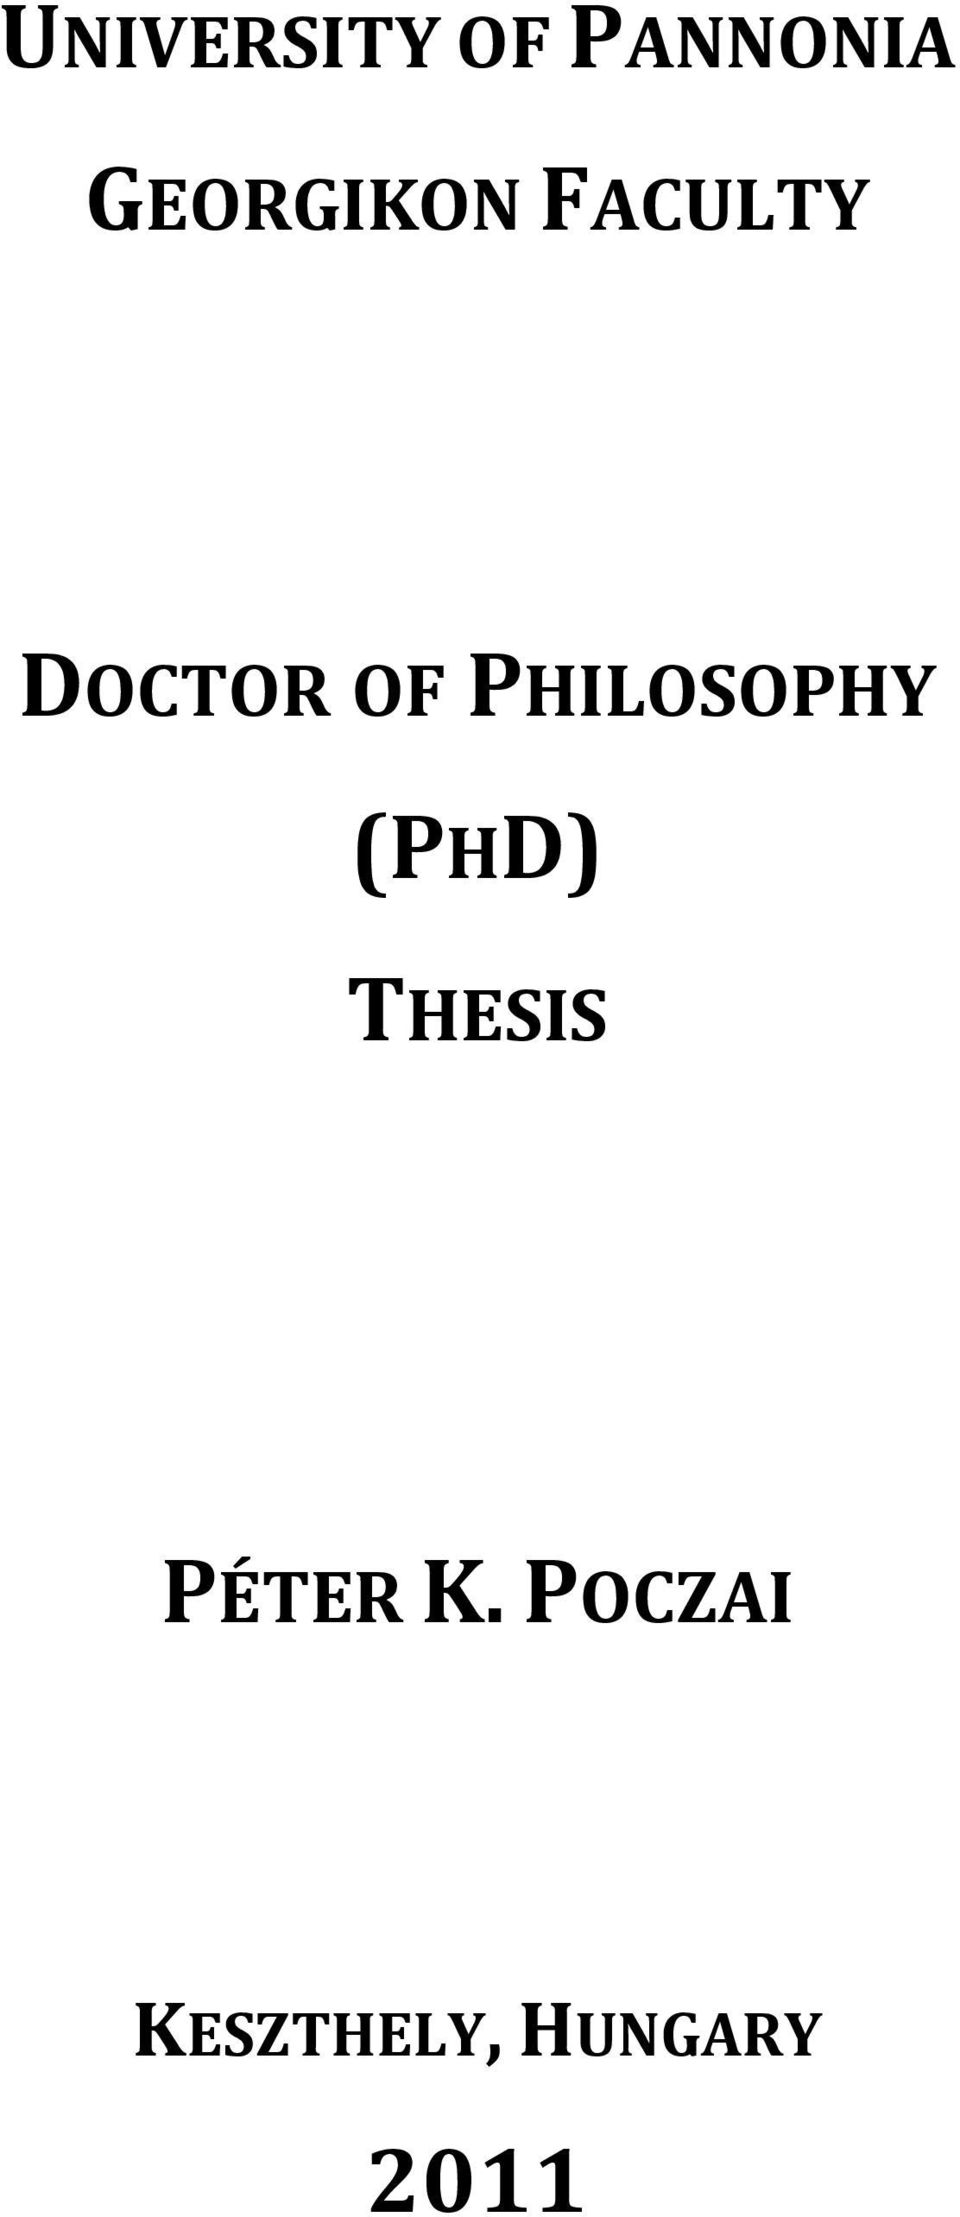 PHILOSOPHY (PHD) THESIS